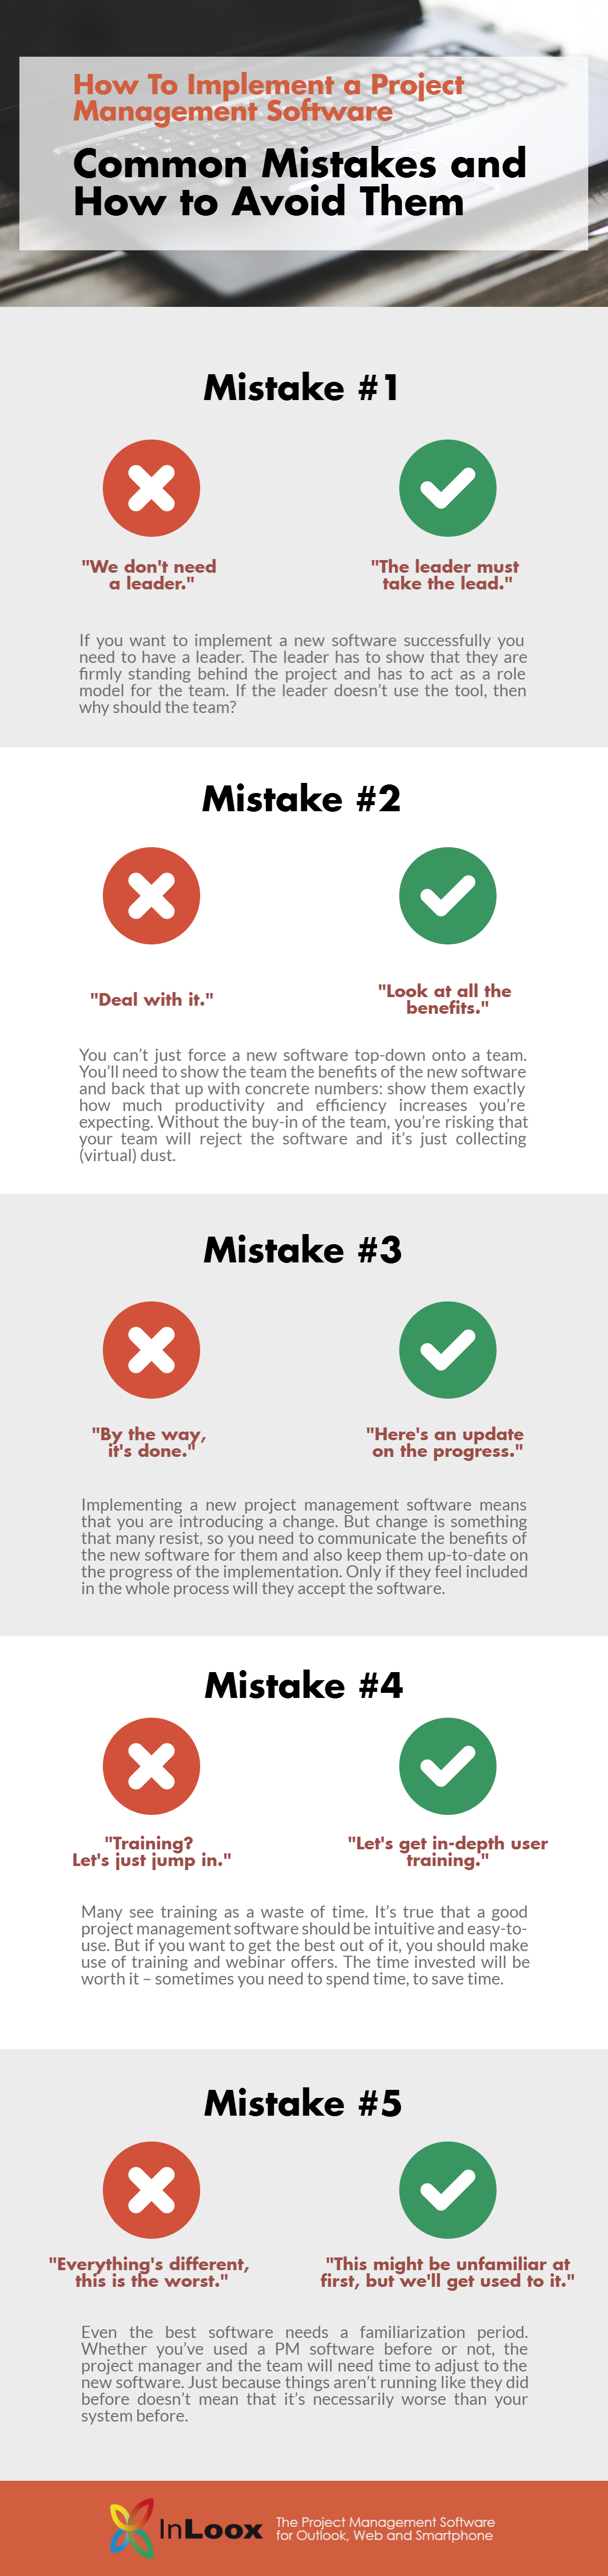 INFOGRAPHIC Implementing a Project Management Software: Common Mistakes and How to Avoid Them